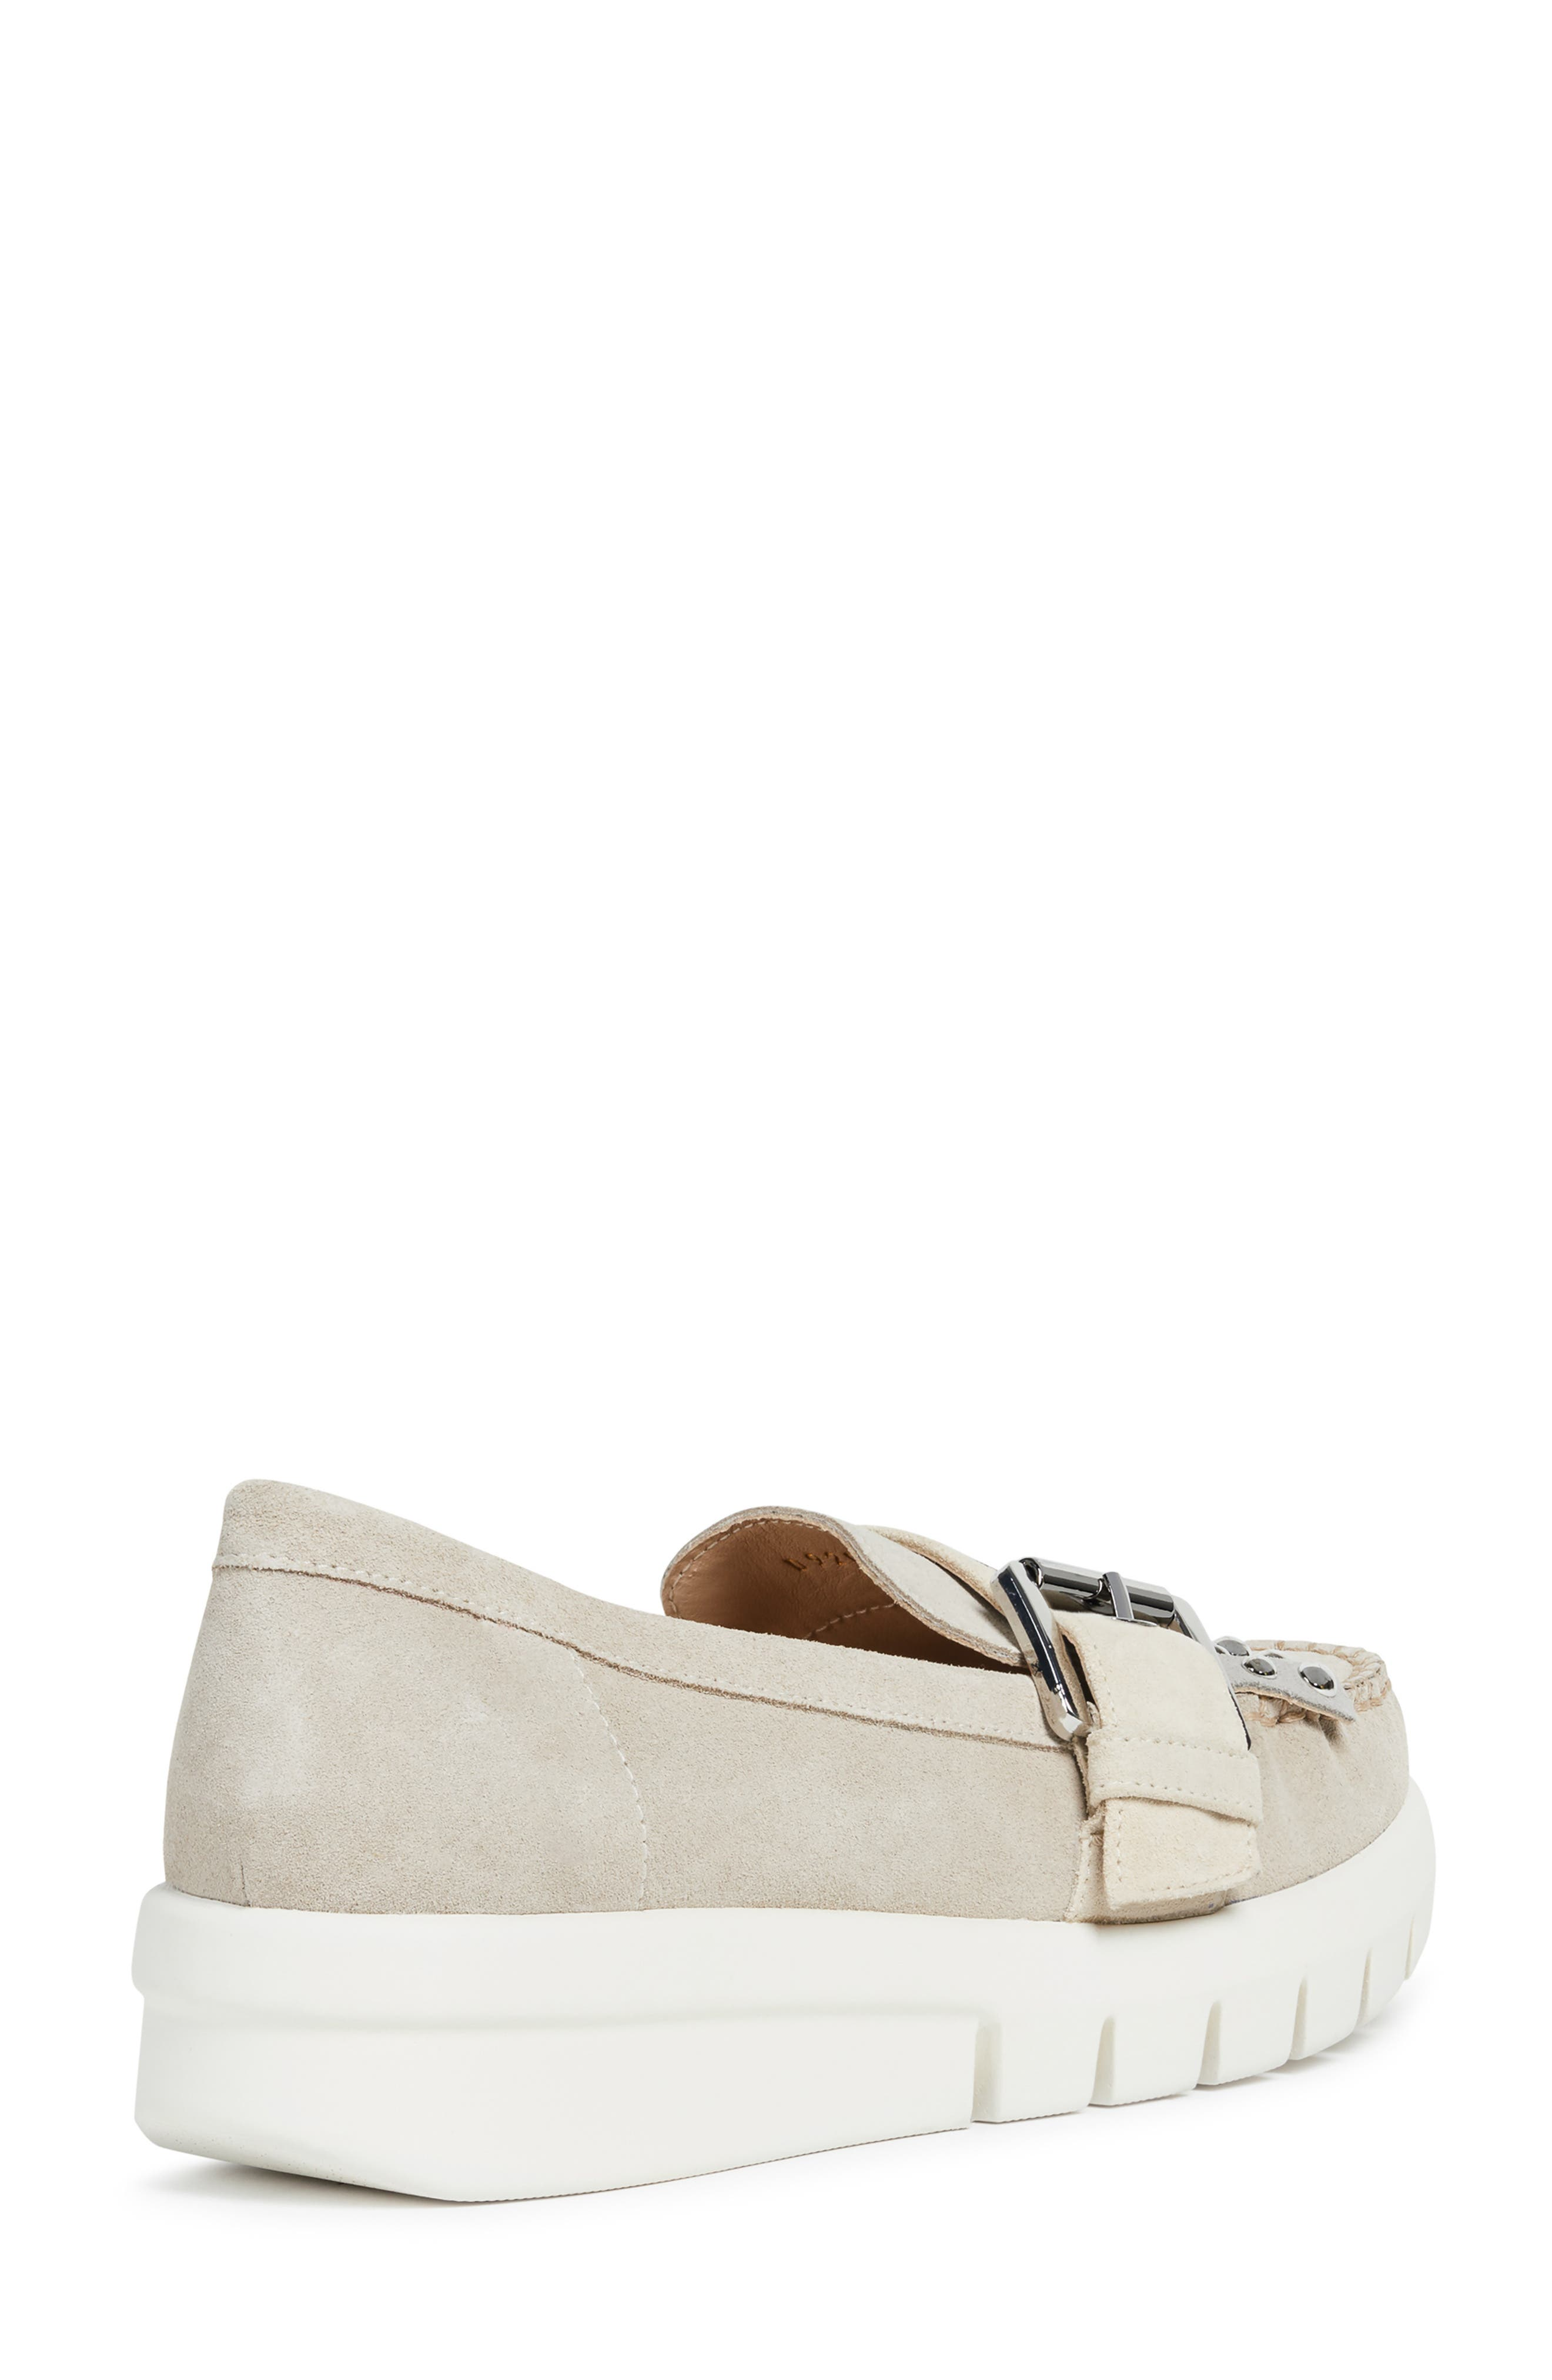 GEOX, Wimbley Studded Kiltie Loafer, Alternate thumbnail 7, color, LIGHT TAUPE/ GREY SUEDE